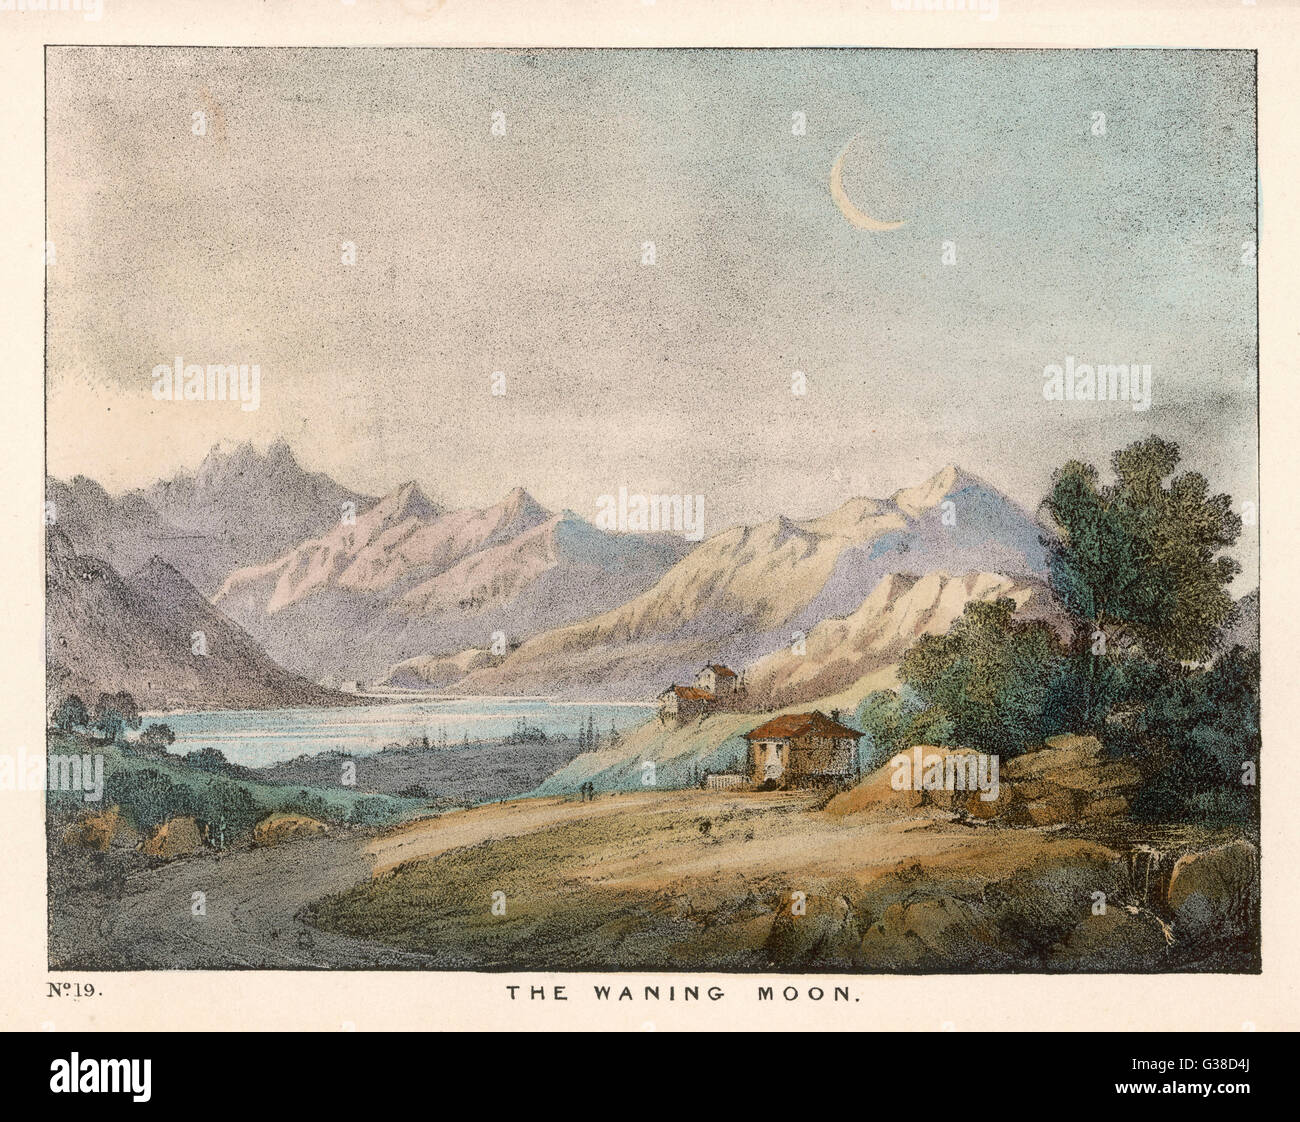 The waning moon shown over a  mountainous landscape.        Date: 1849 - Stock Image